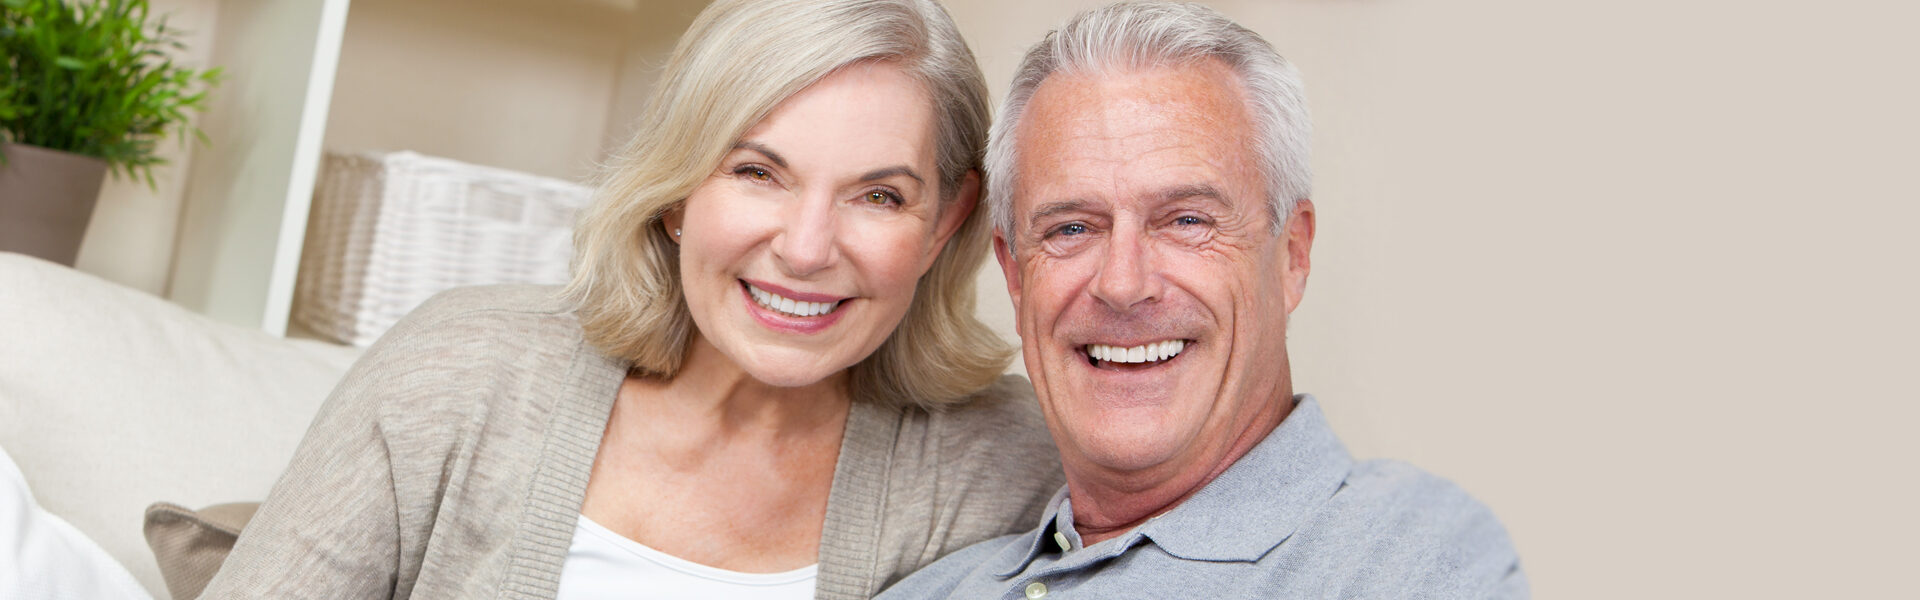 Laser Gum Surgery in Westwood, MA